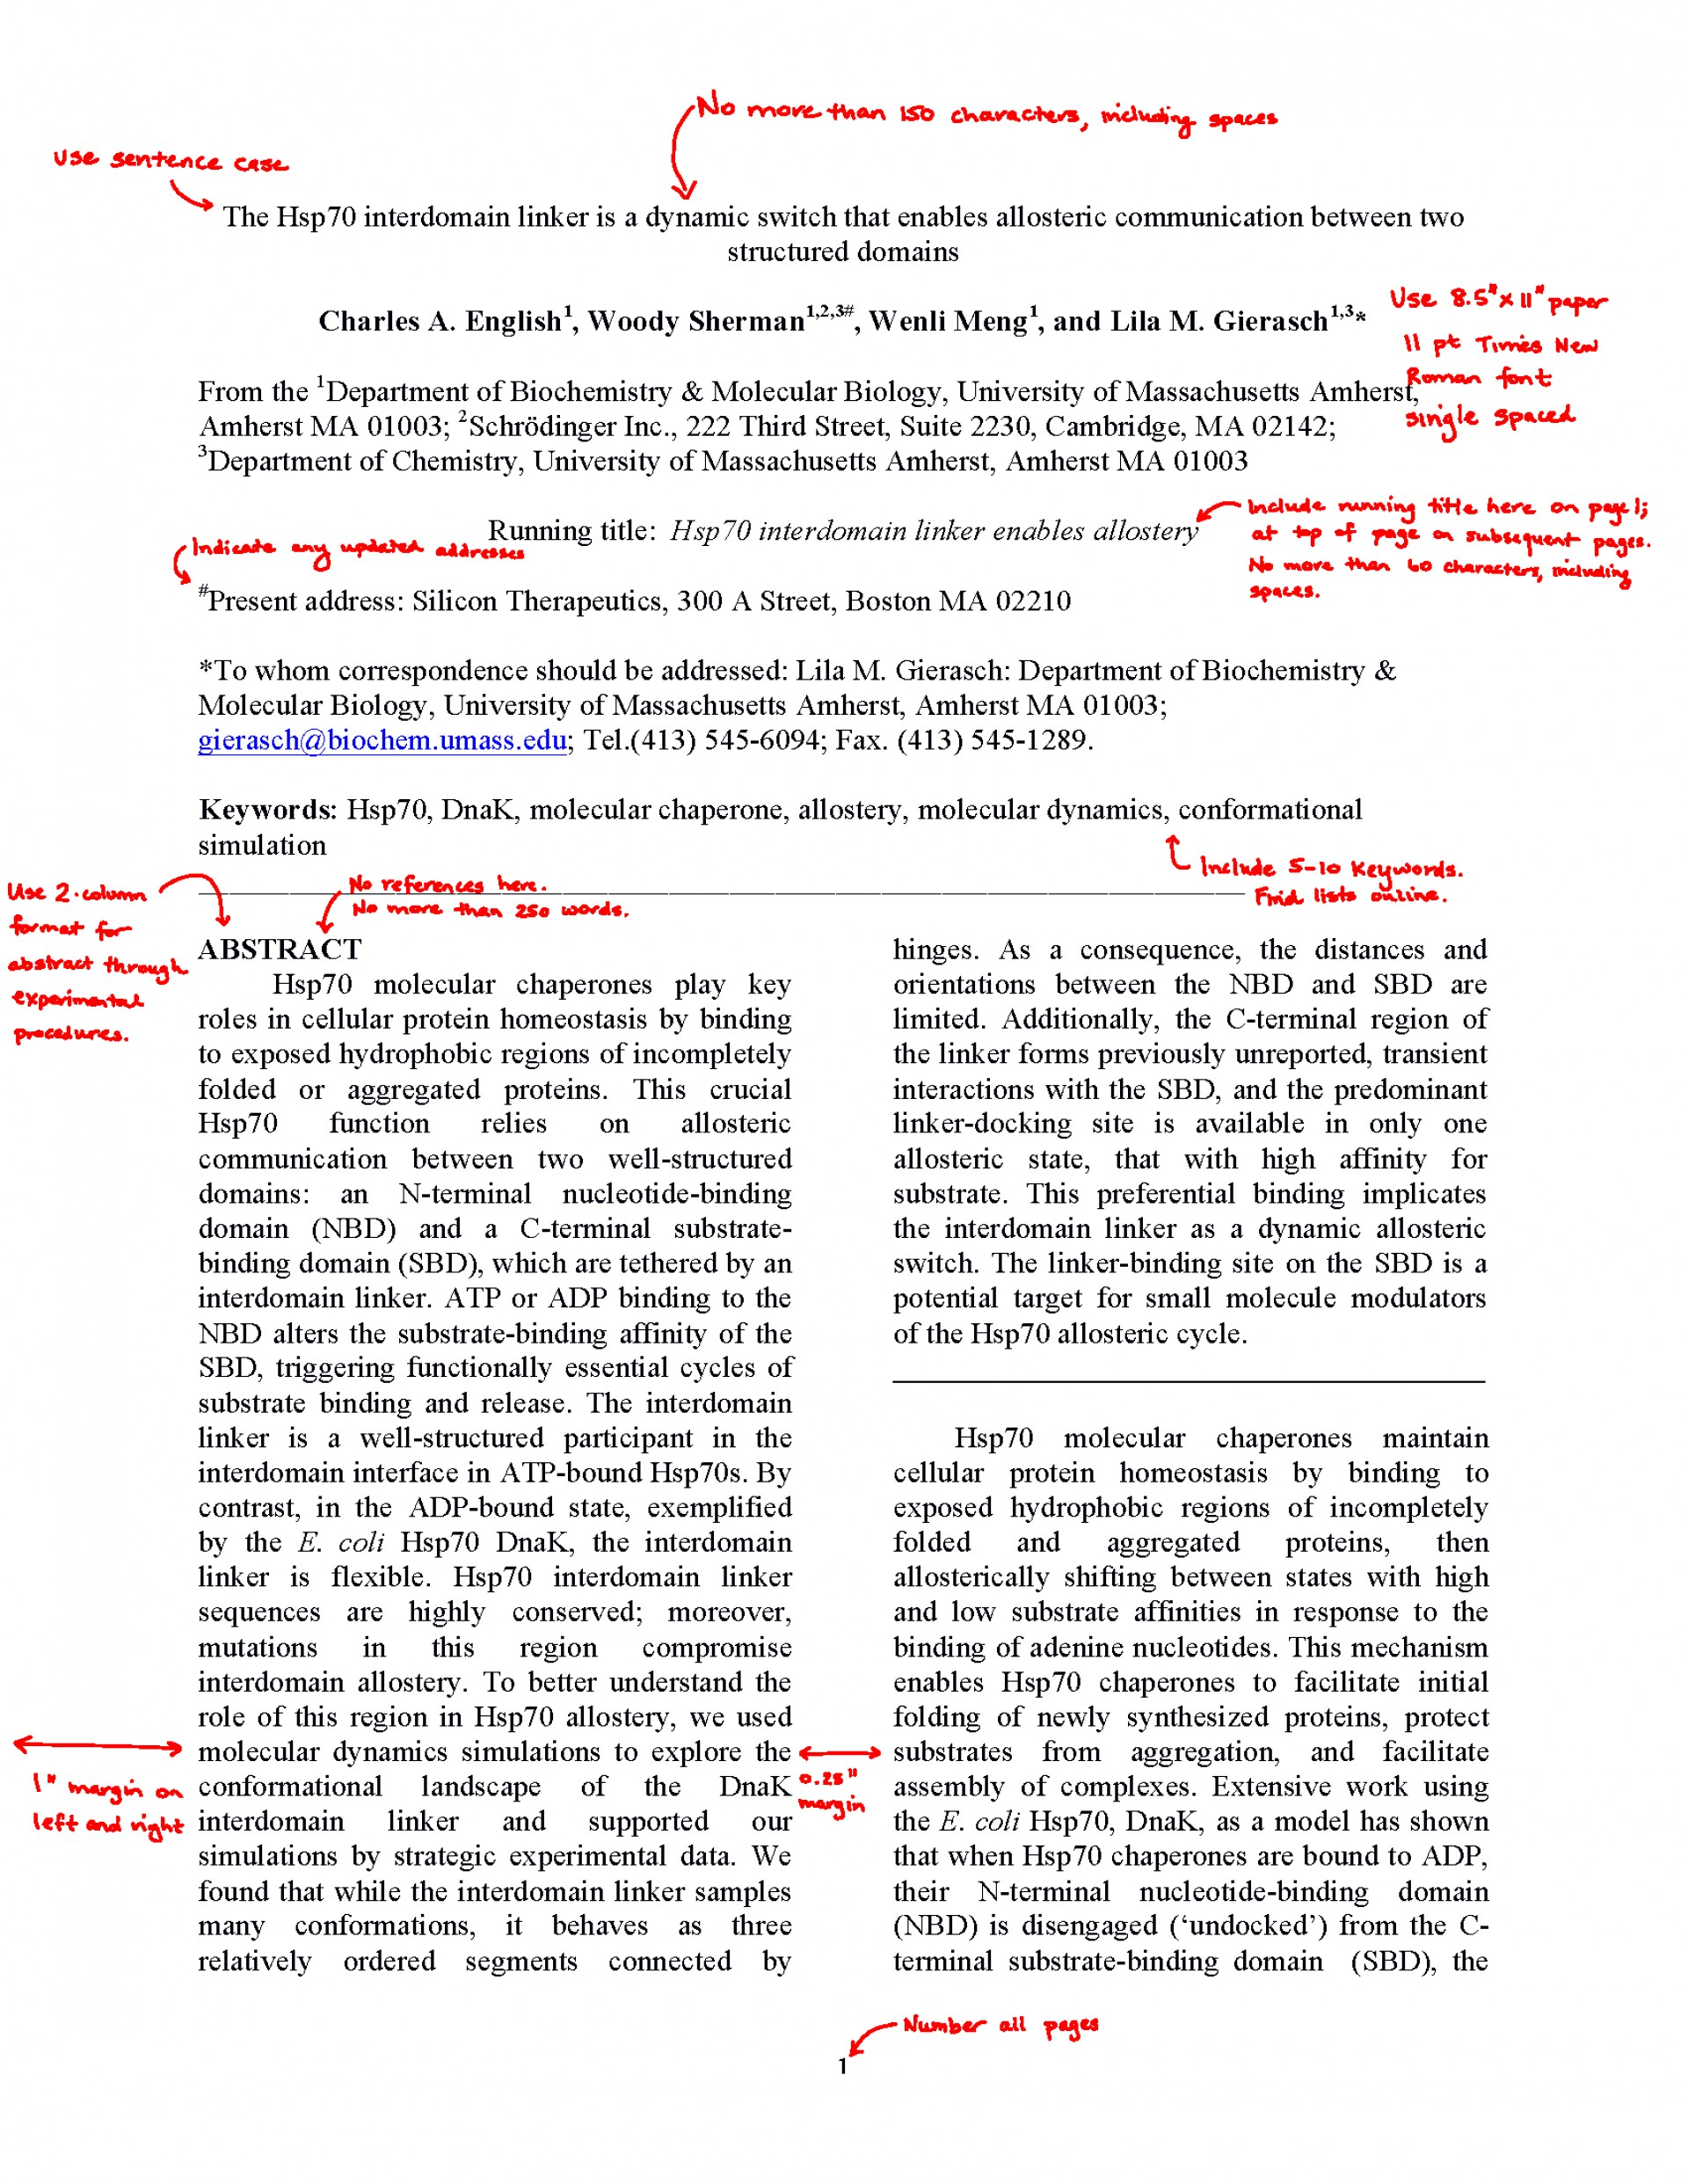 007 Free Online Submission Of Research Papers Paper Jbc Example Pdf Marvelous 1920